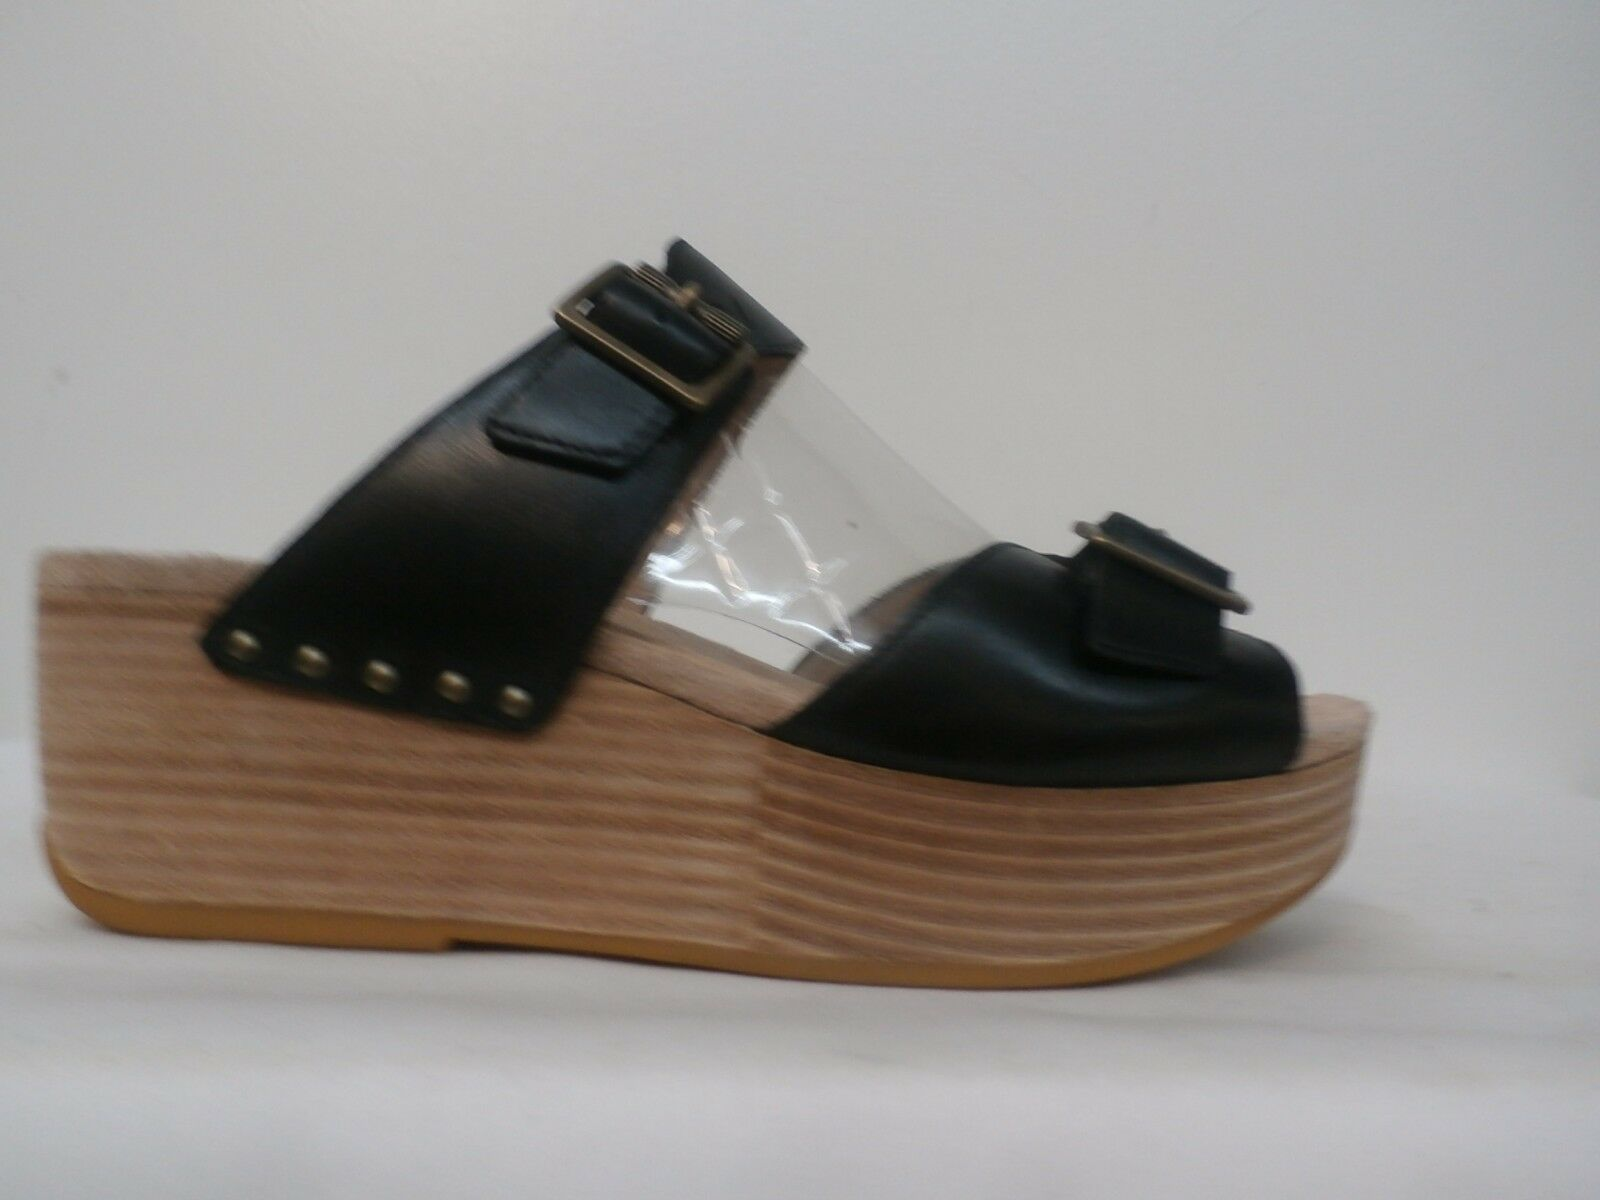 Dansko Leather Wedge Slide Sandals - Selma BLACK Size 41=10.5-11